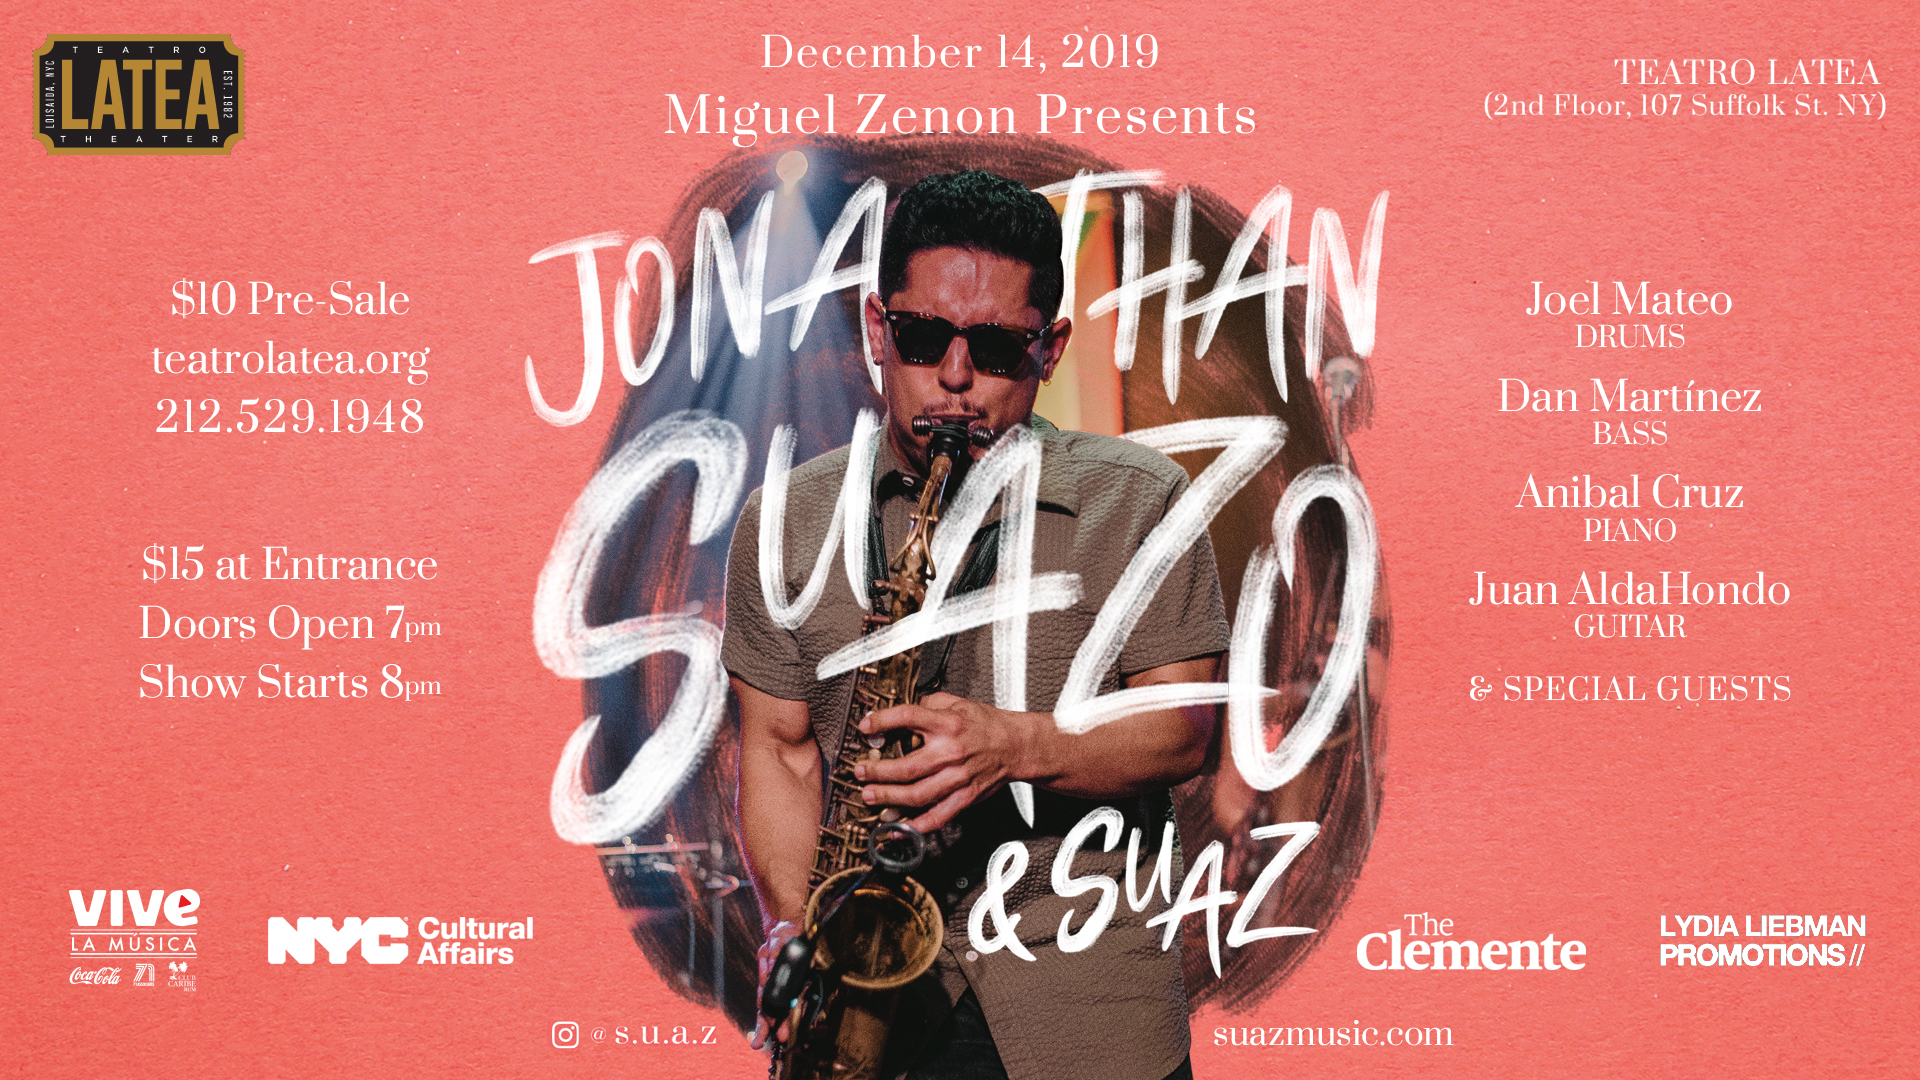 EVENT ANNOUNCEMENT: Miguel Zenón Presents Jazz at LATEA with Jonathan Suazo & Suaz 12/14/19